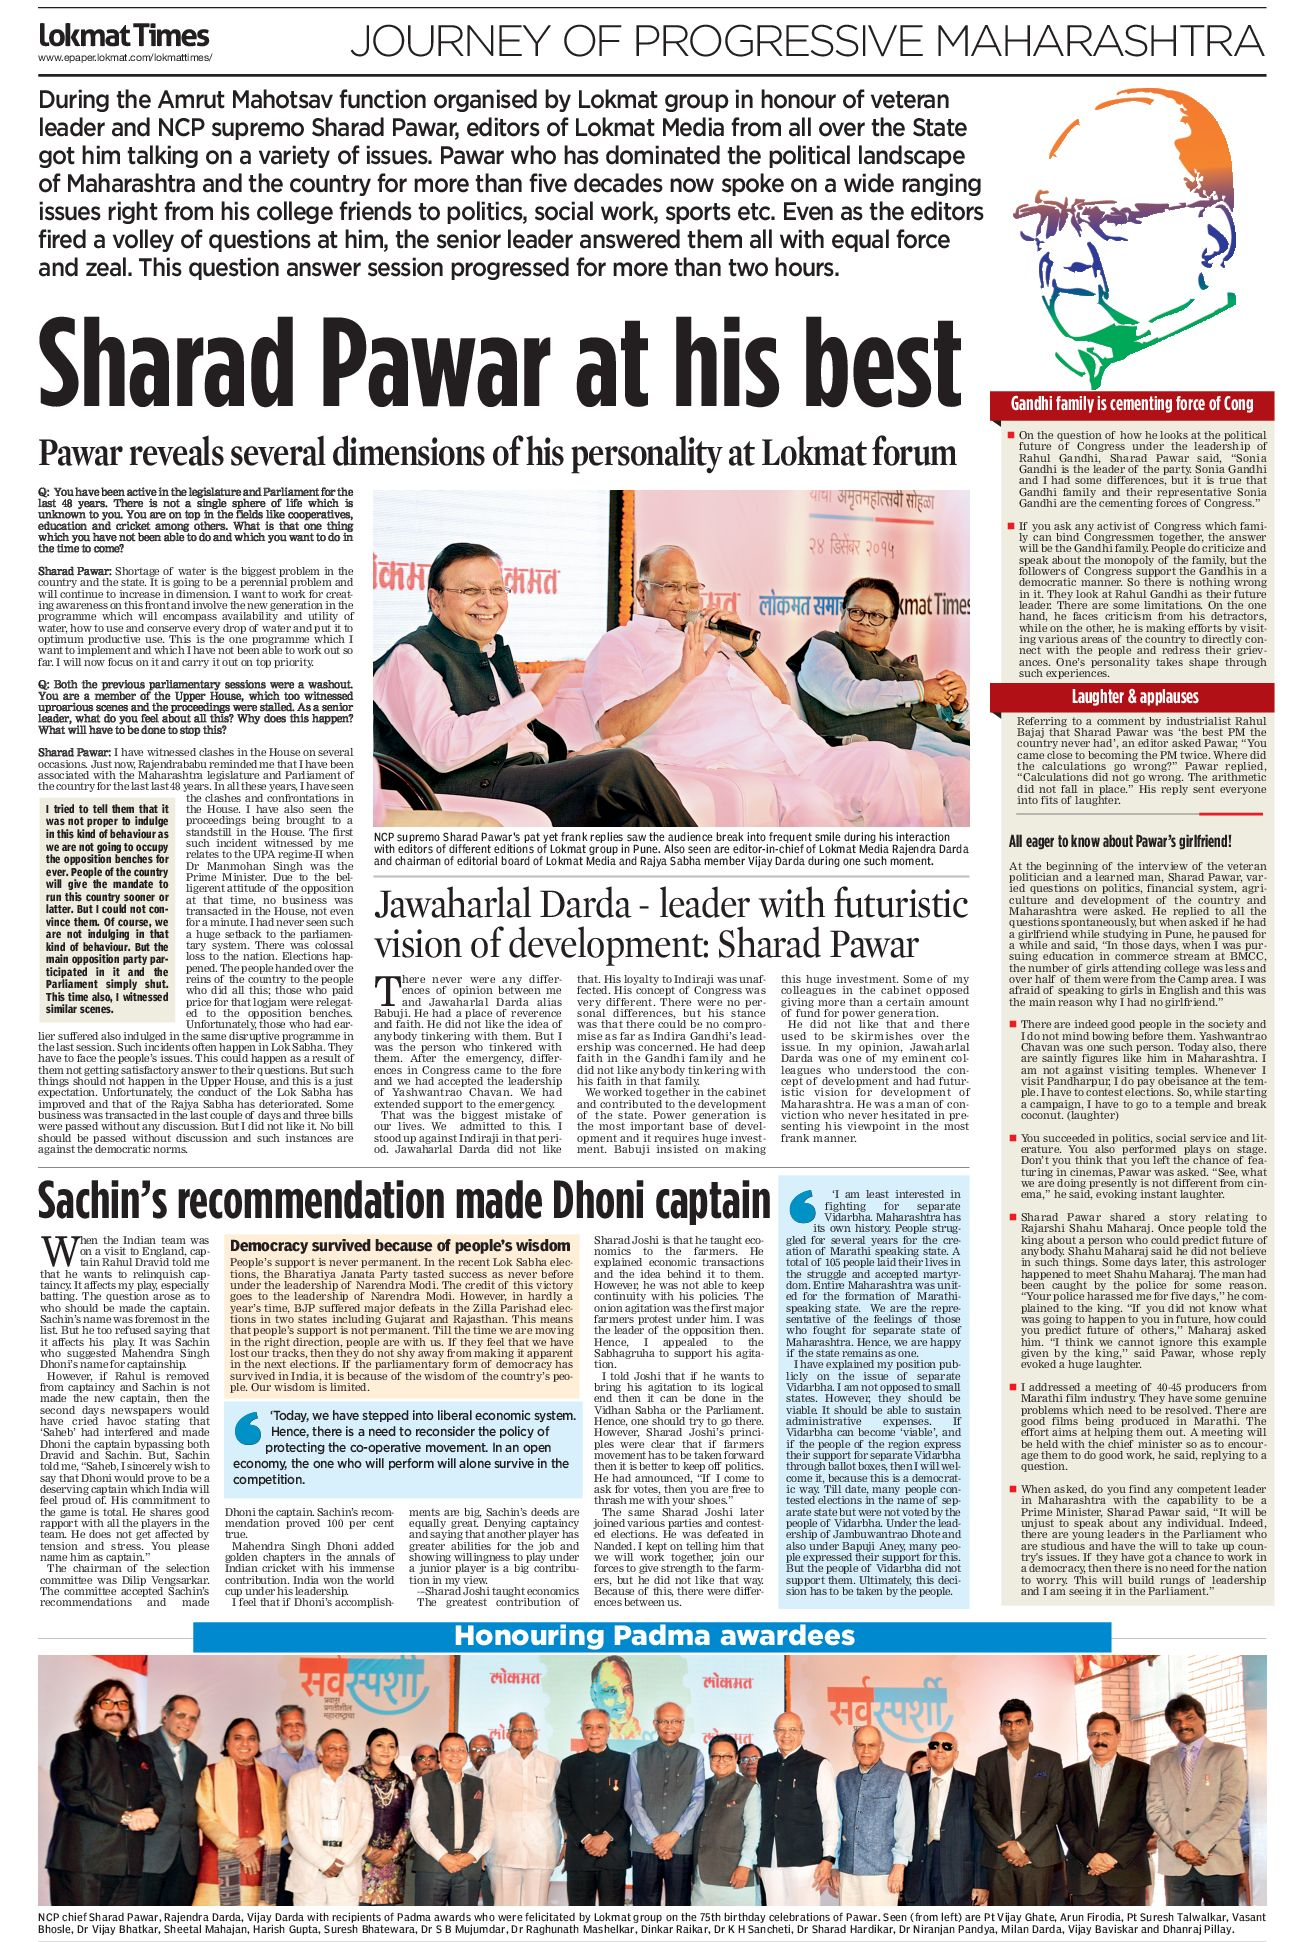 Sharad Pawar at his best